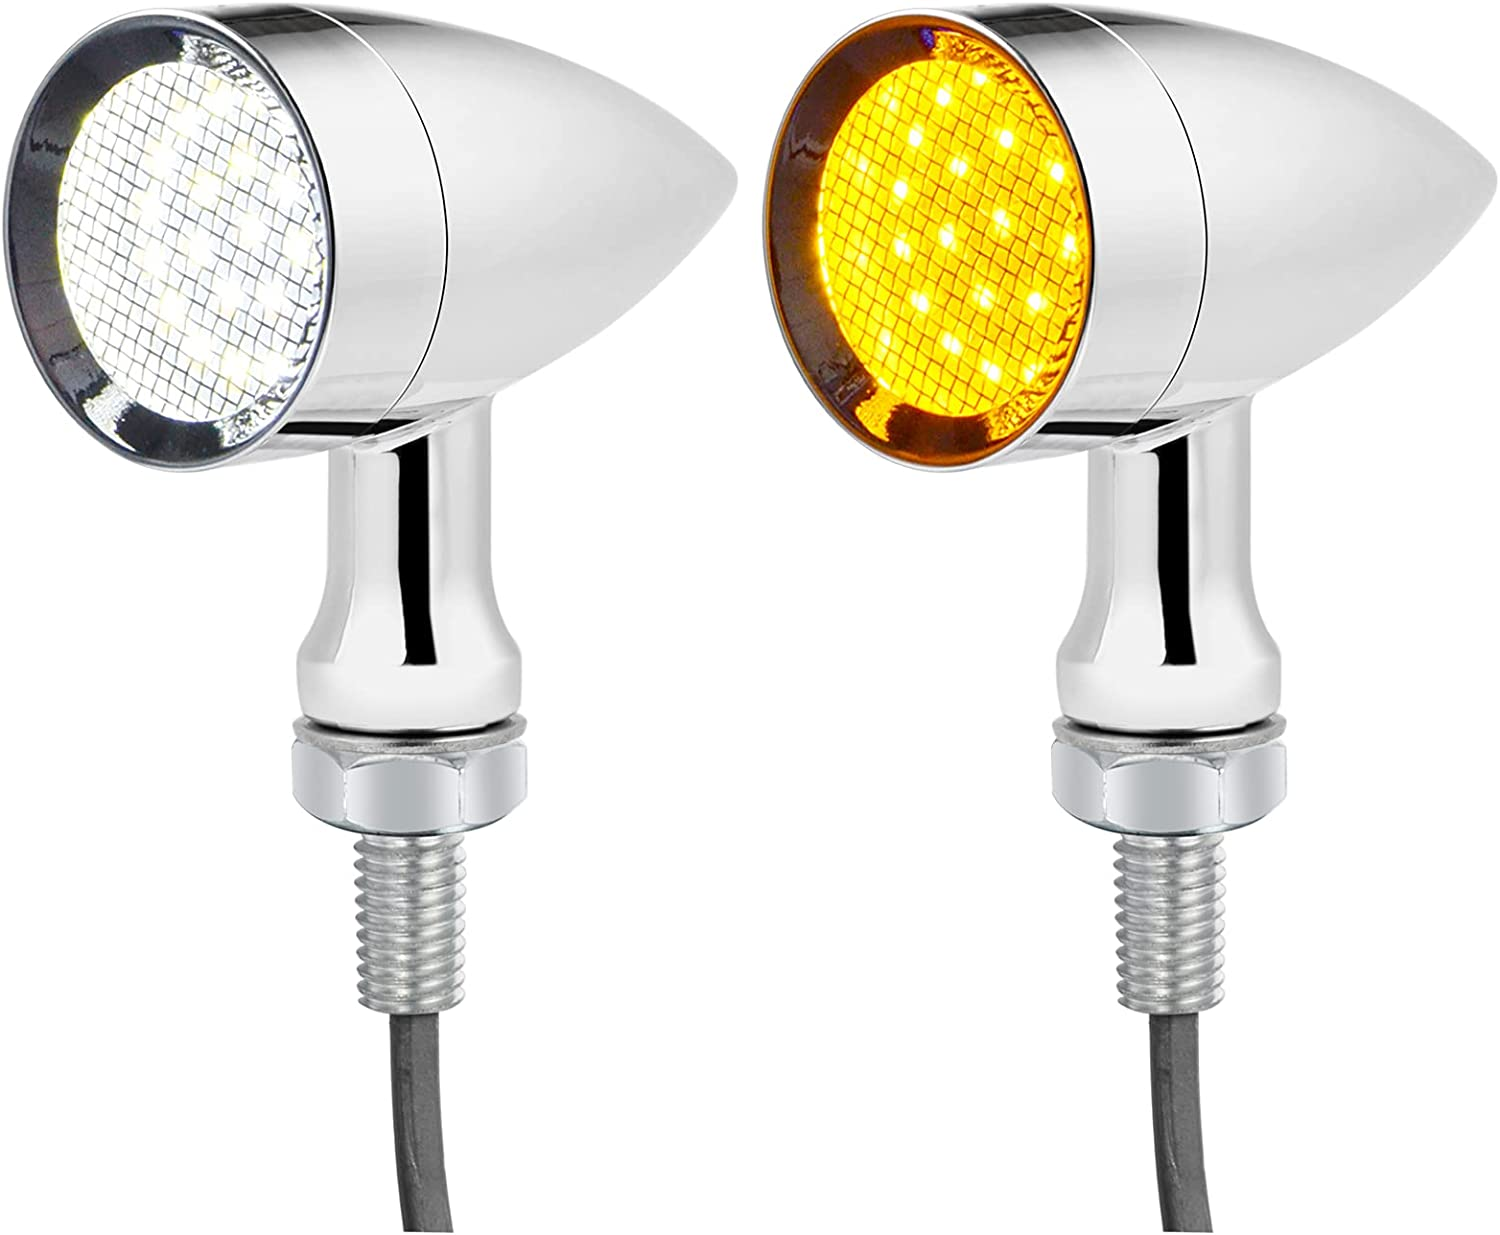 PBYMT 2PCS Motorcycle Bullet 24 LEDs Amb Signal White Front Turn Super Selling beauty product restock quality top